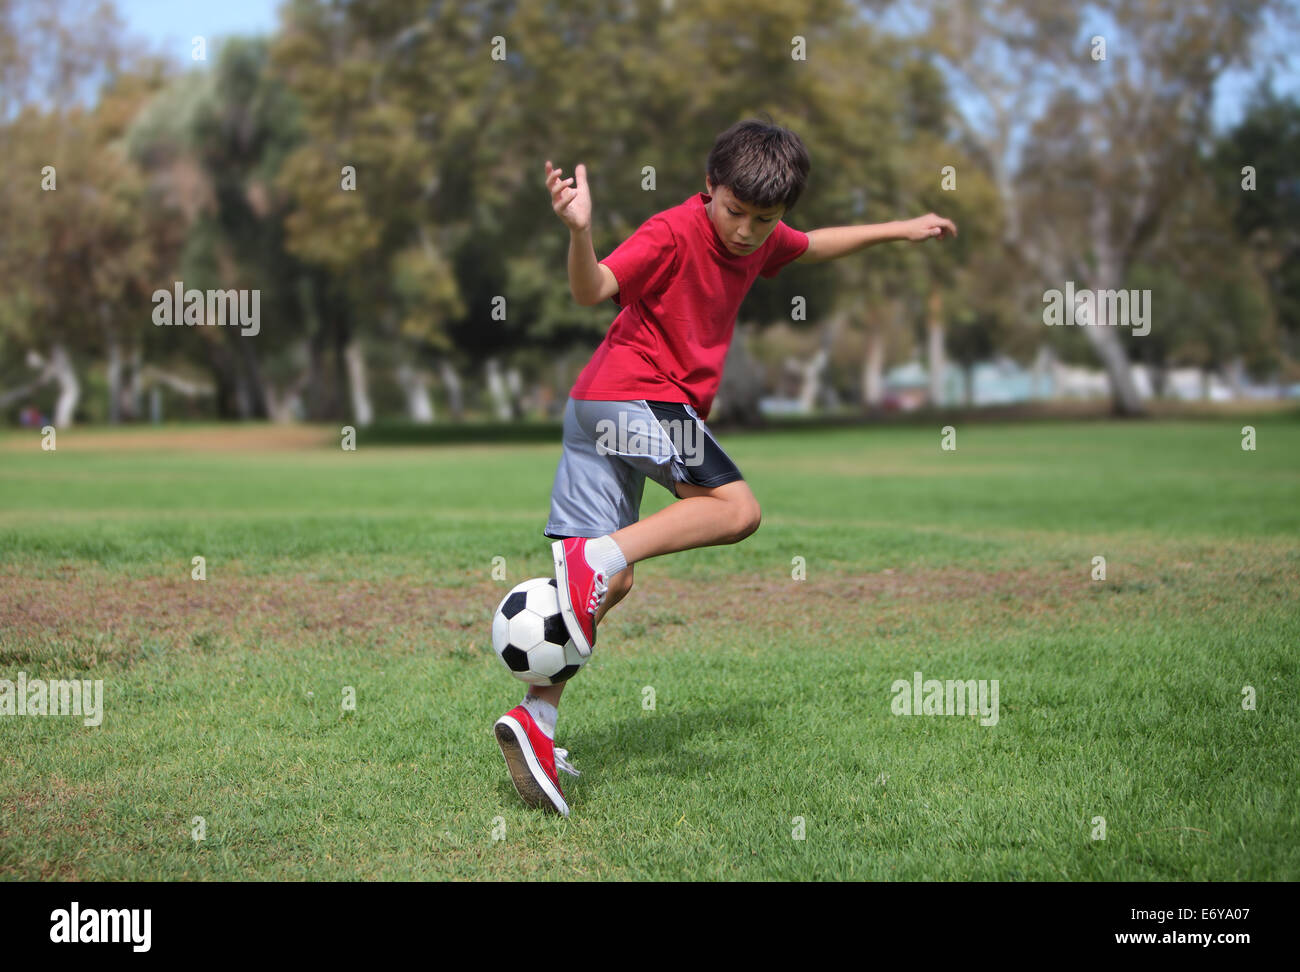 Young boy plays with a soccer ball practicing kicks - authentic action - Stock Image